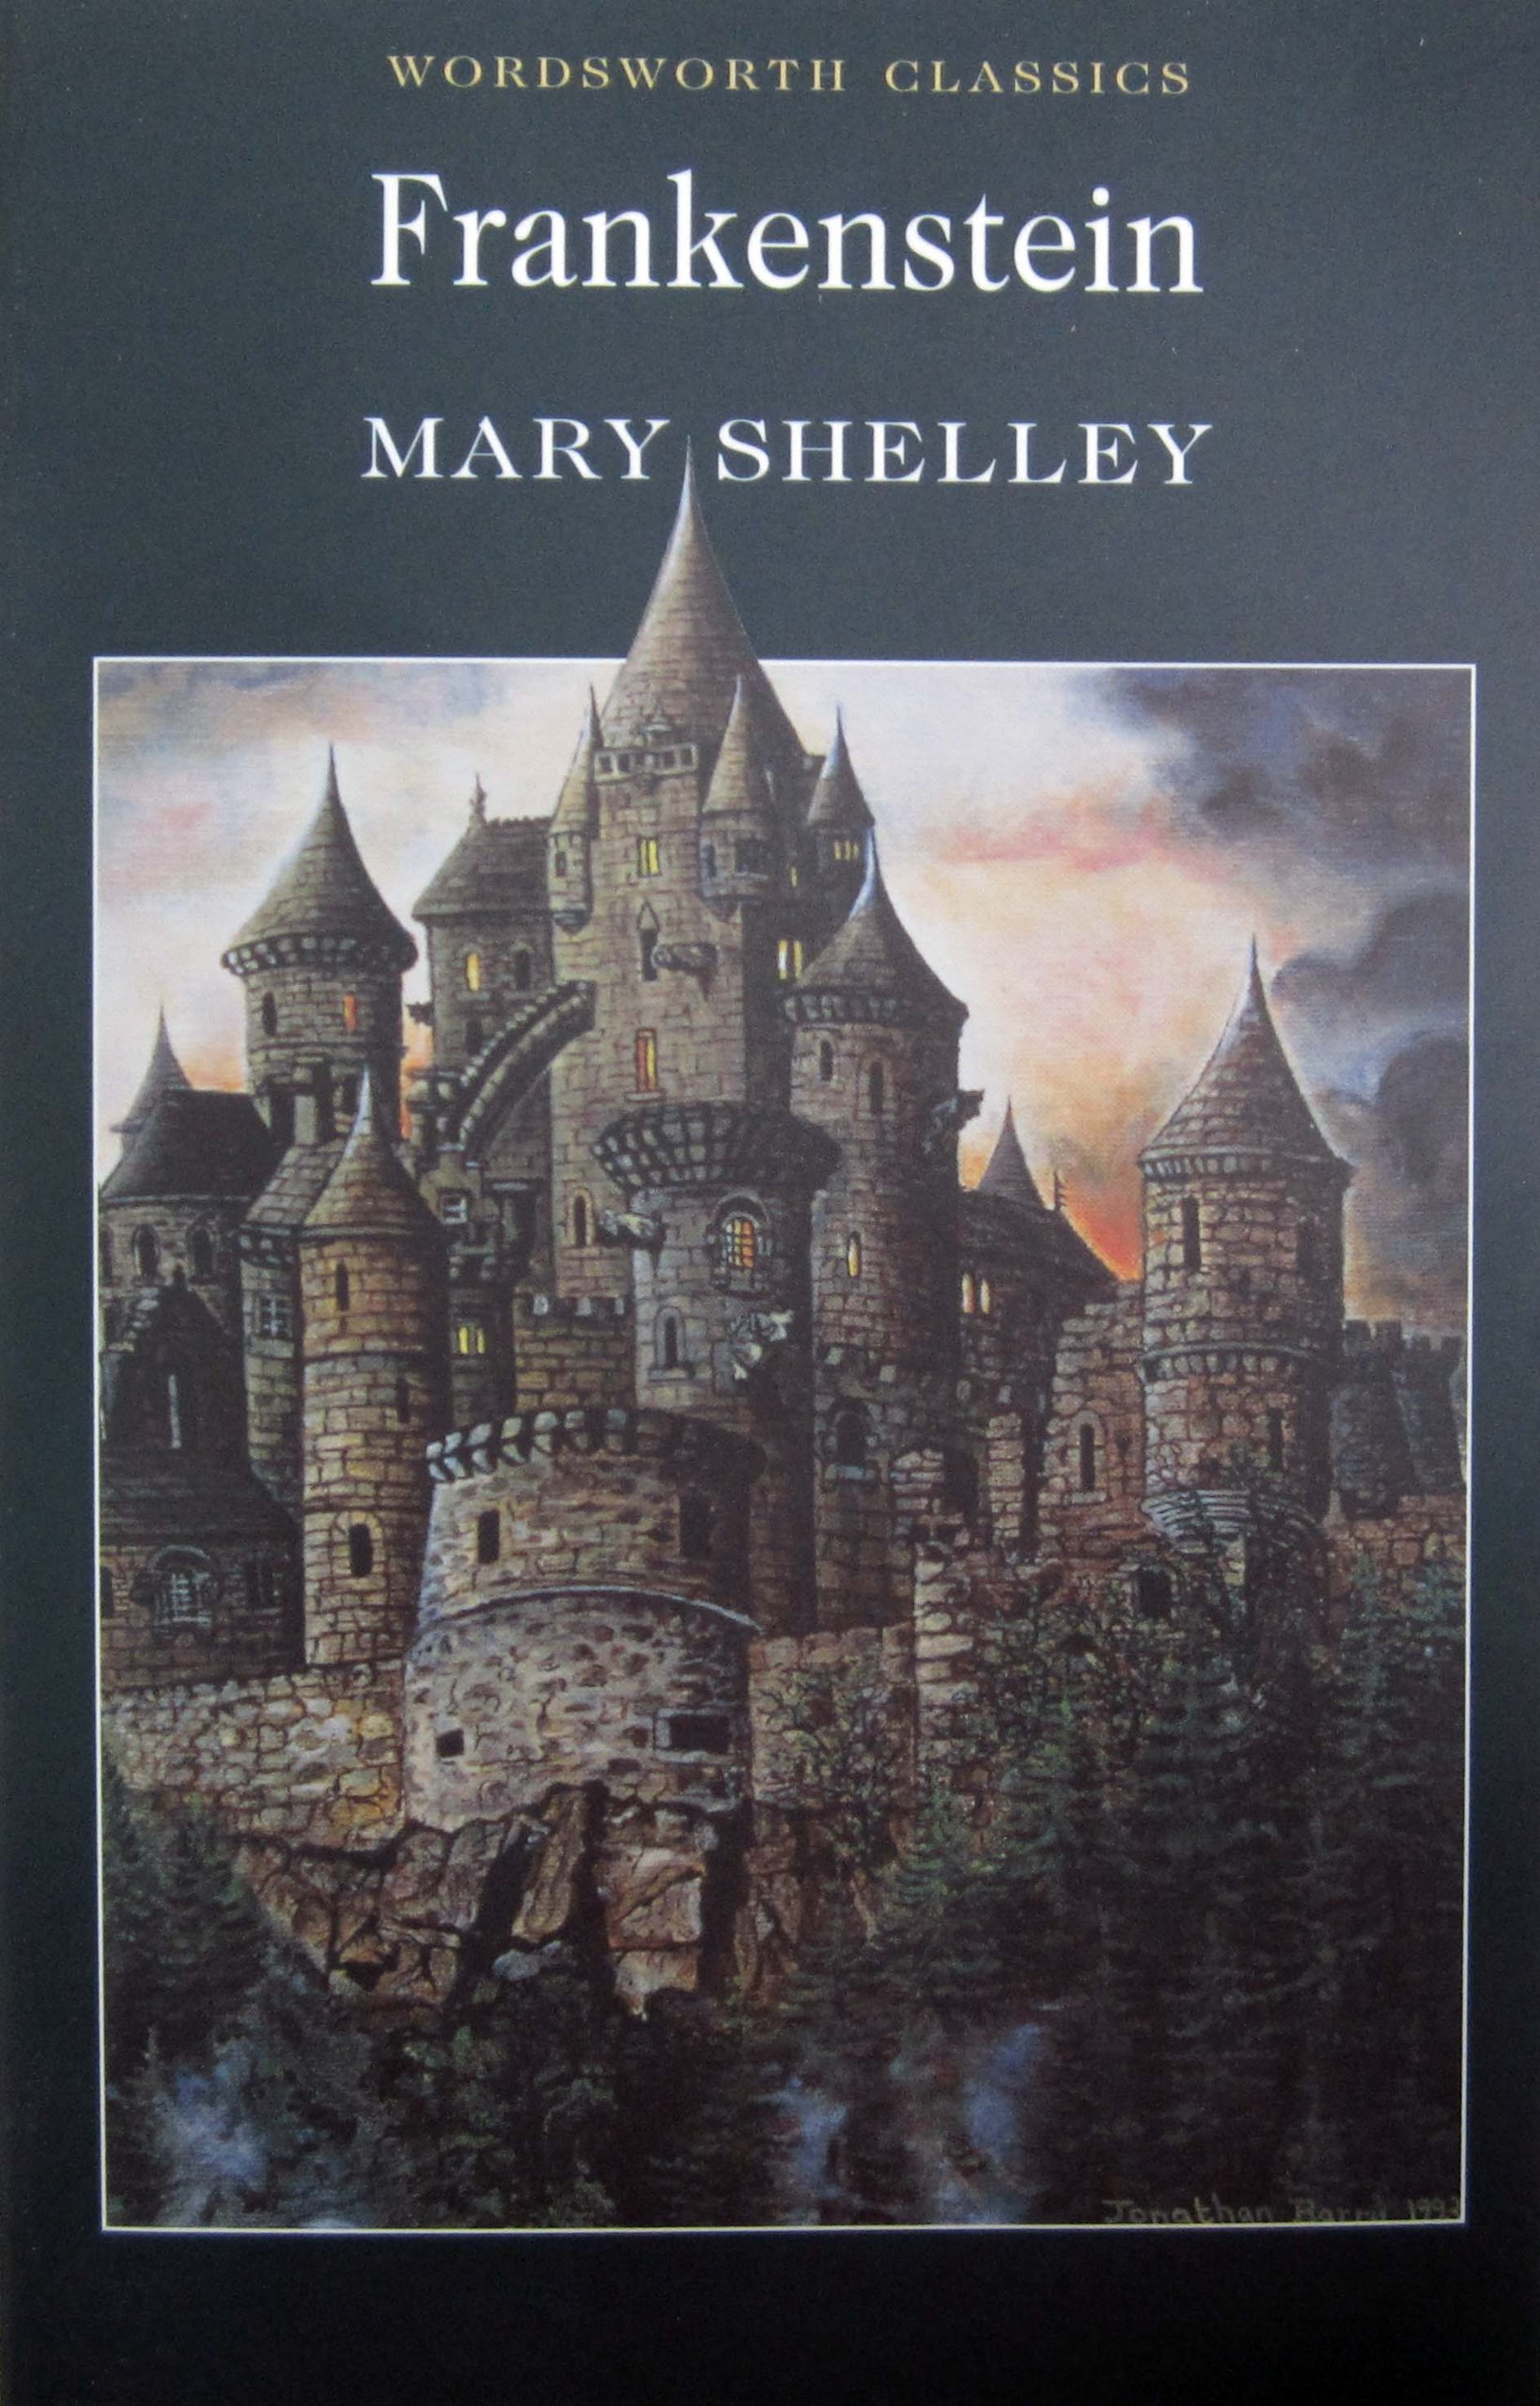 a description of the psychological origins of mary shelleys frankenstein